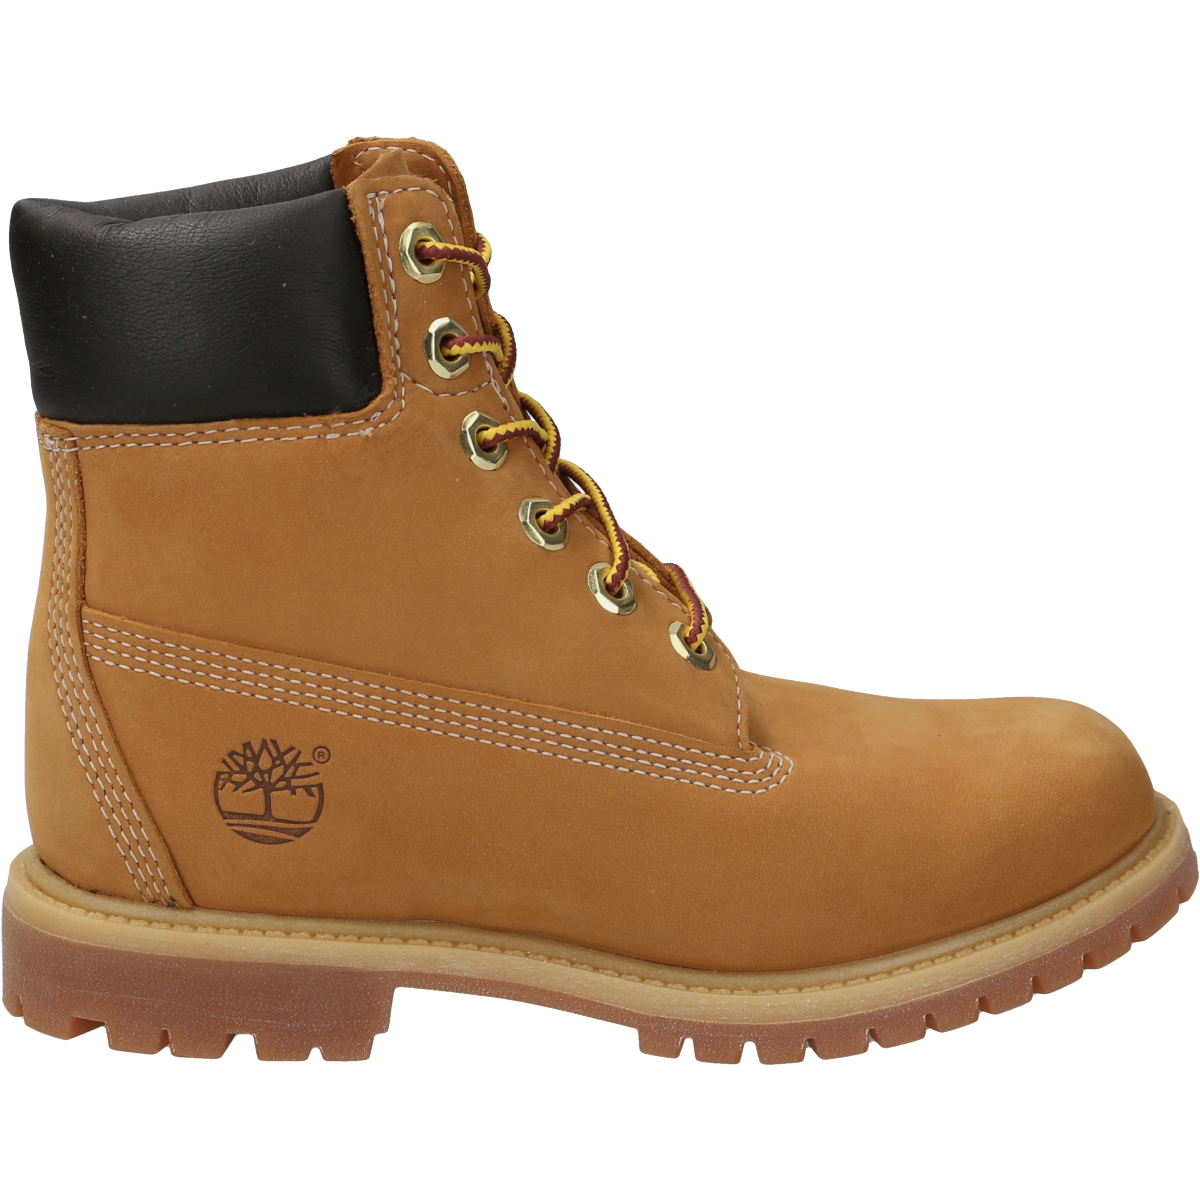 Timberland #10361 ICON 6 INCH PREMIUM BOOT Damenschuhe Boots